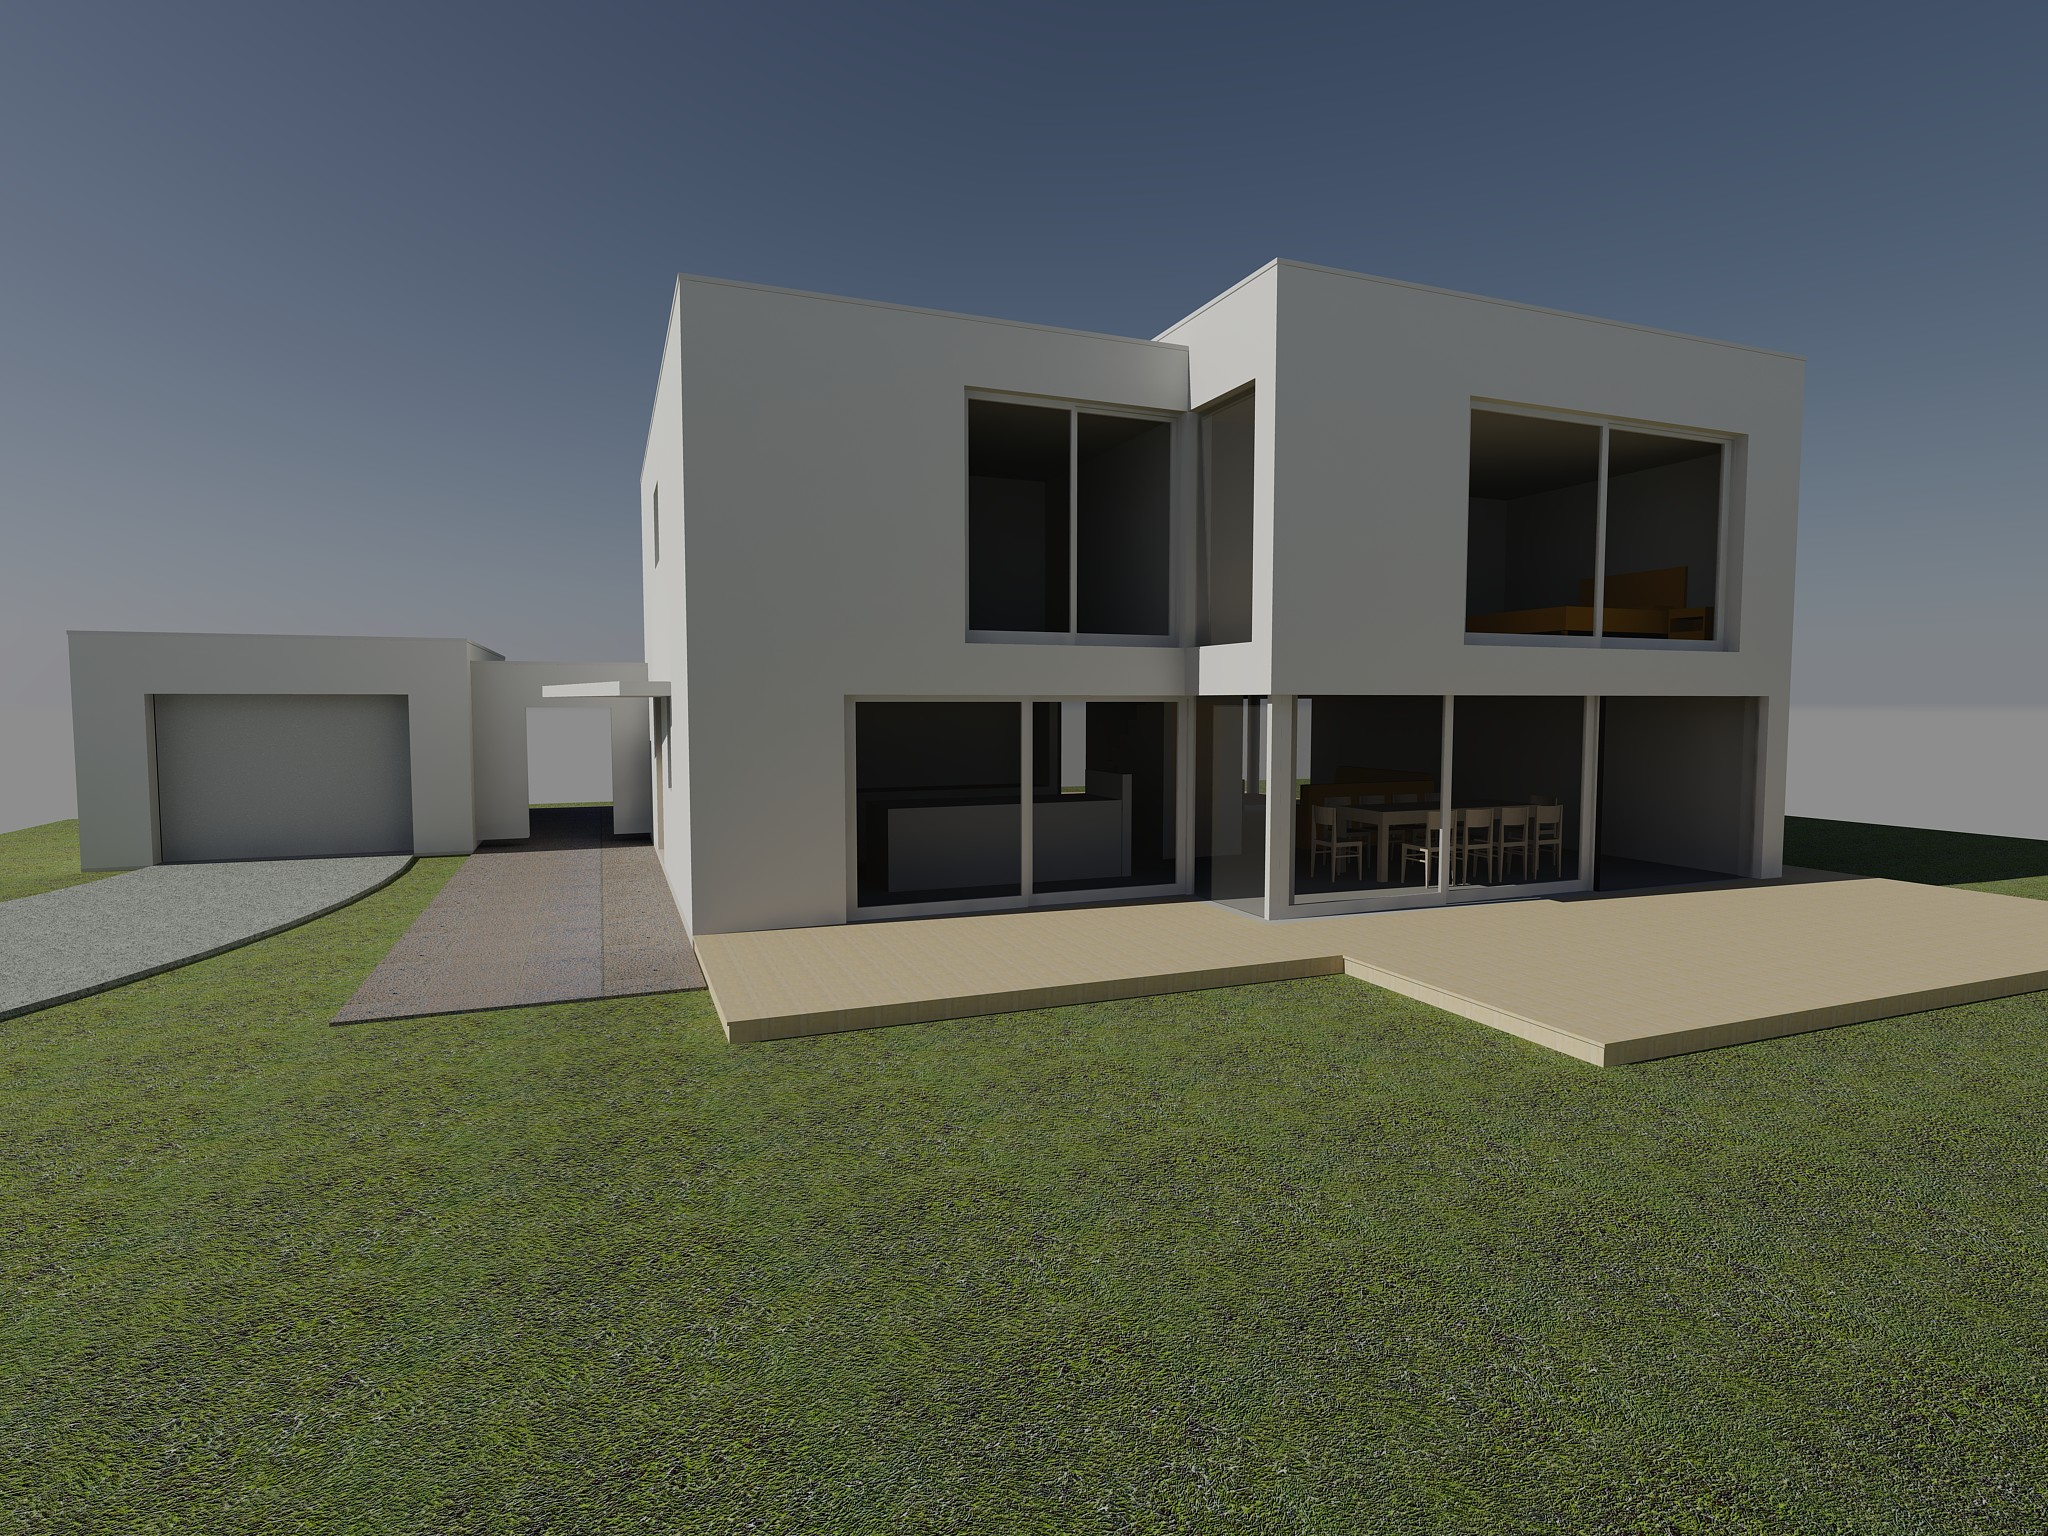 Imagery for new home in Cornwall designed by Architects The Bazeley Partnership - approved for planning